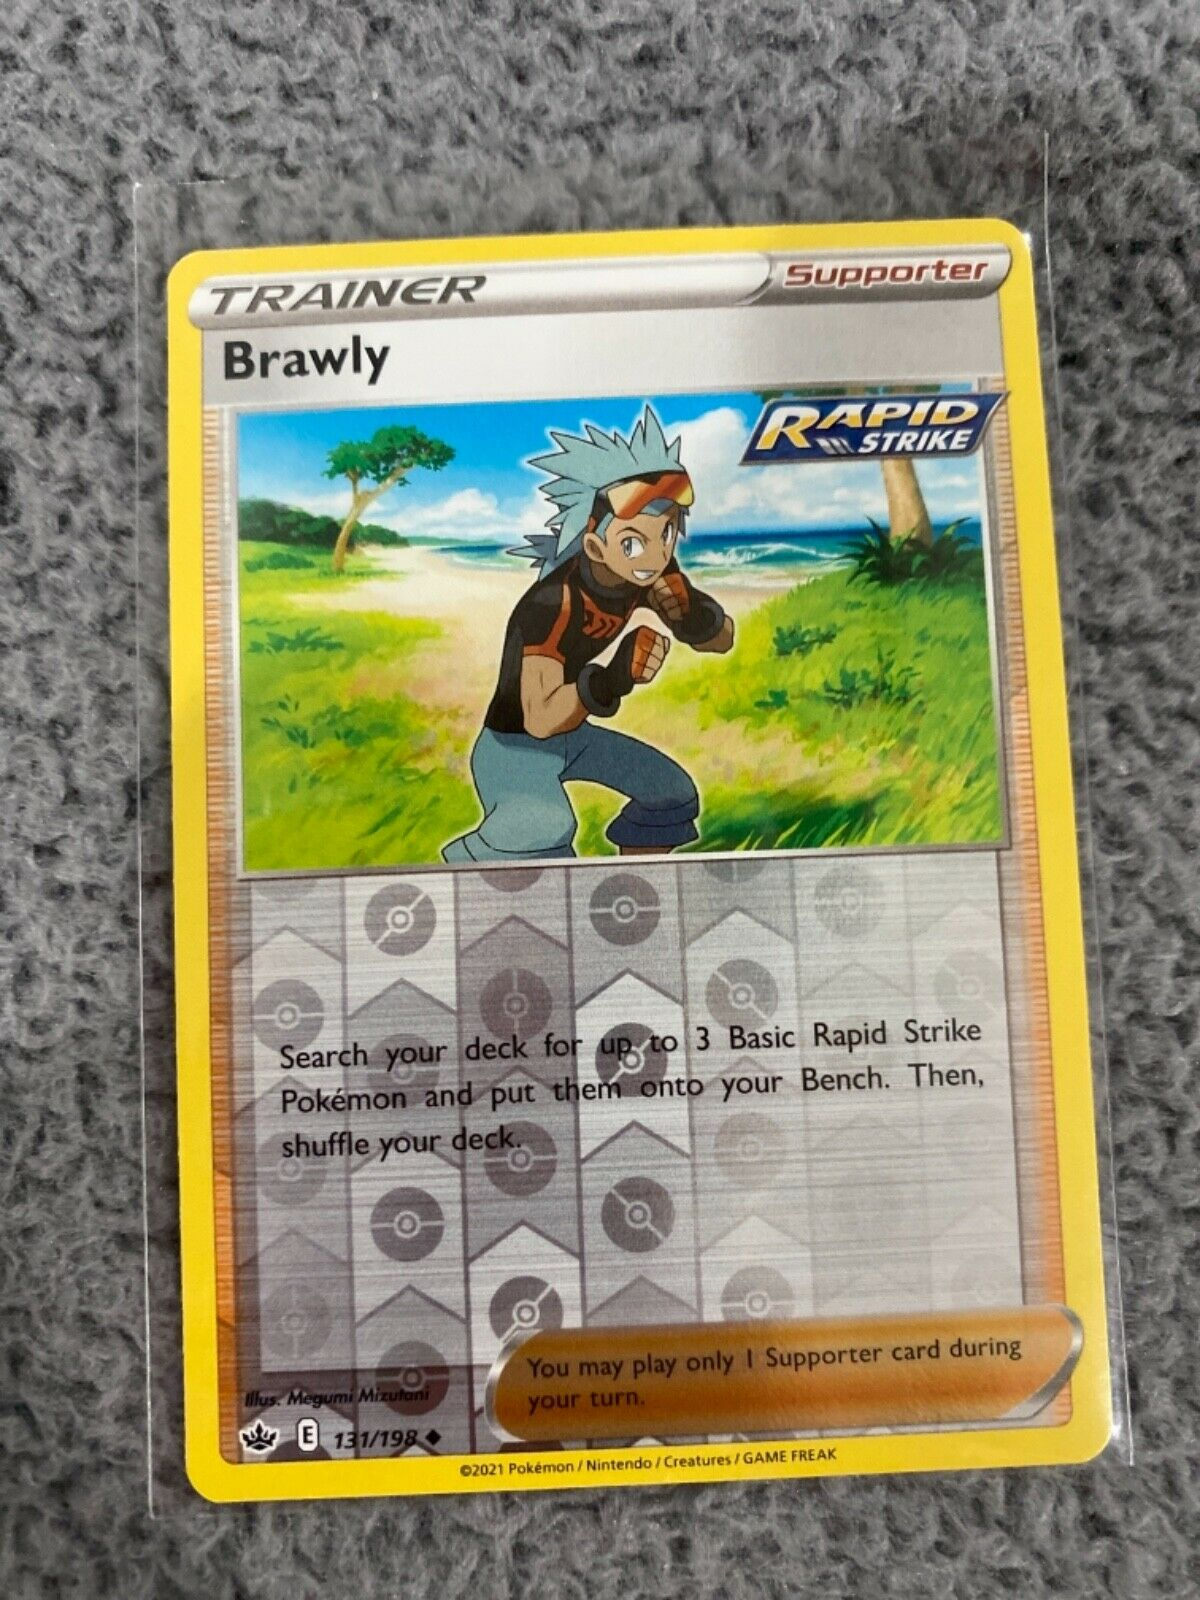 Pokemon TCG Chilling reign reverse holo Brawly Trainer Supporter 131/198 NM